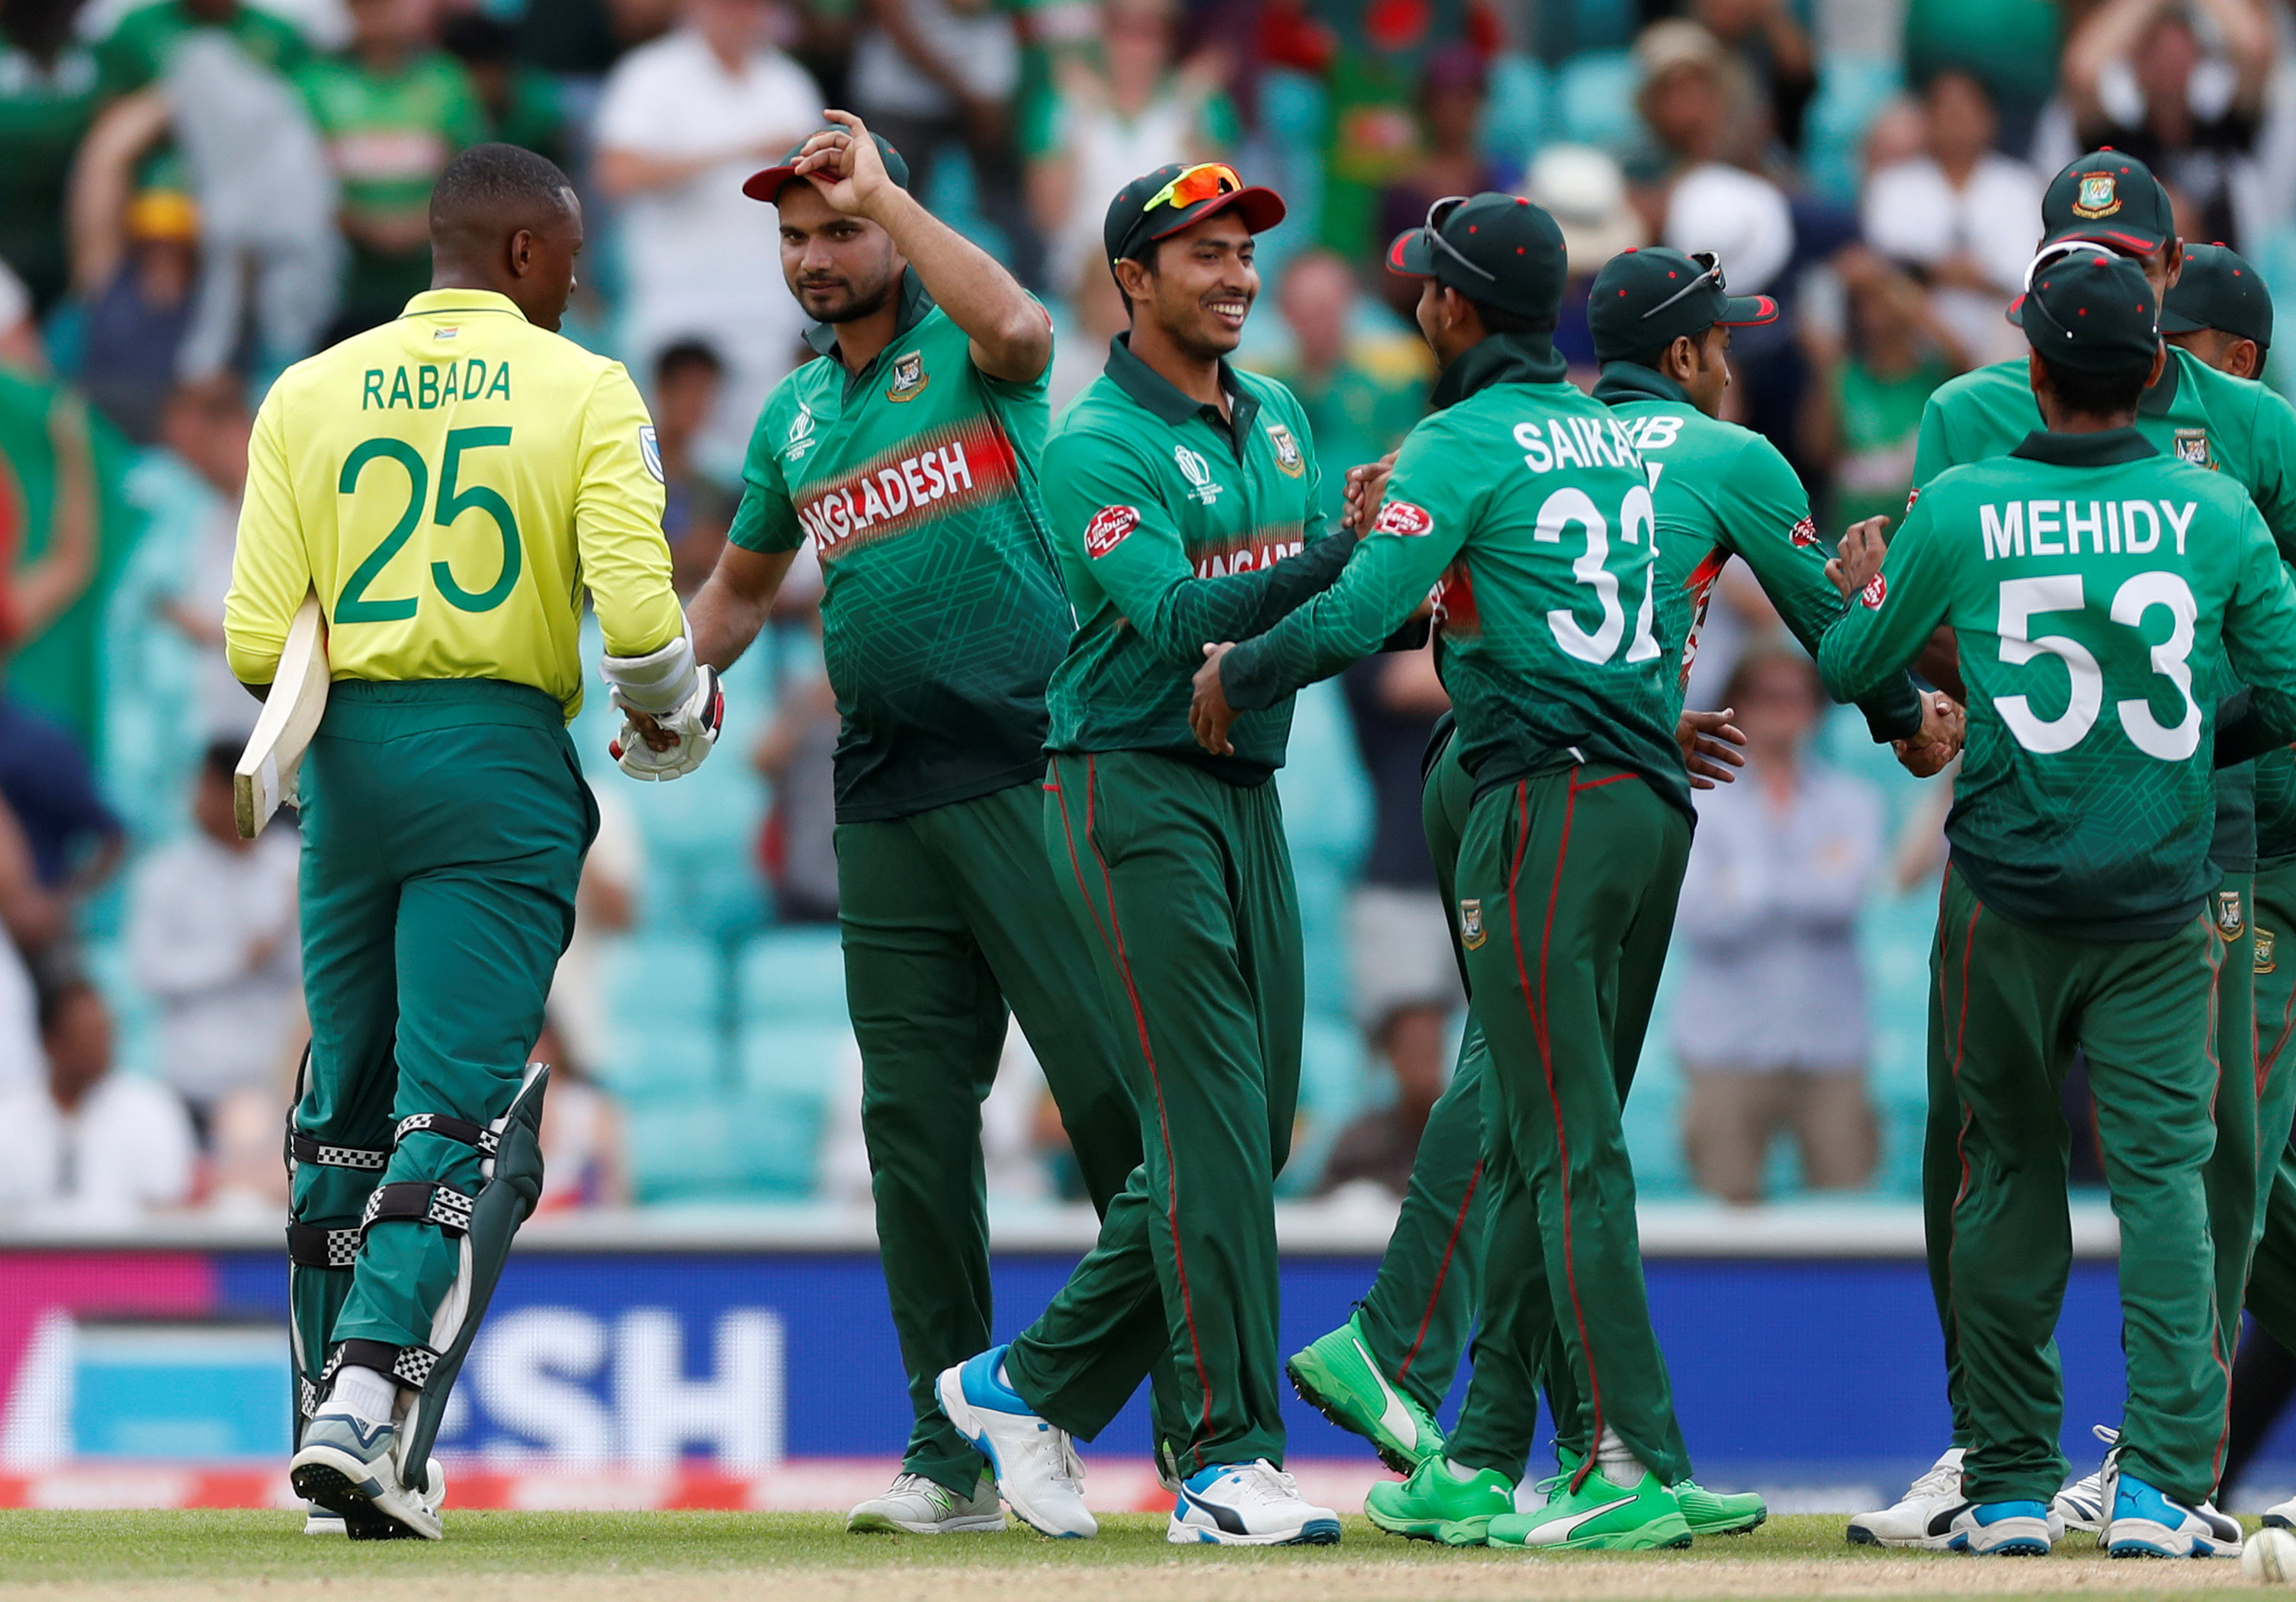 Cricket - ICC Cricket World Cup - South Africa v Bangladesh - Kia Oval, London, Britain - June 2, 2019   Bangladesh players celebrate after the match       Action Images via Reuters/Paul Childs